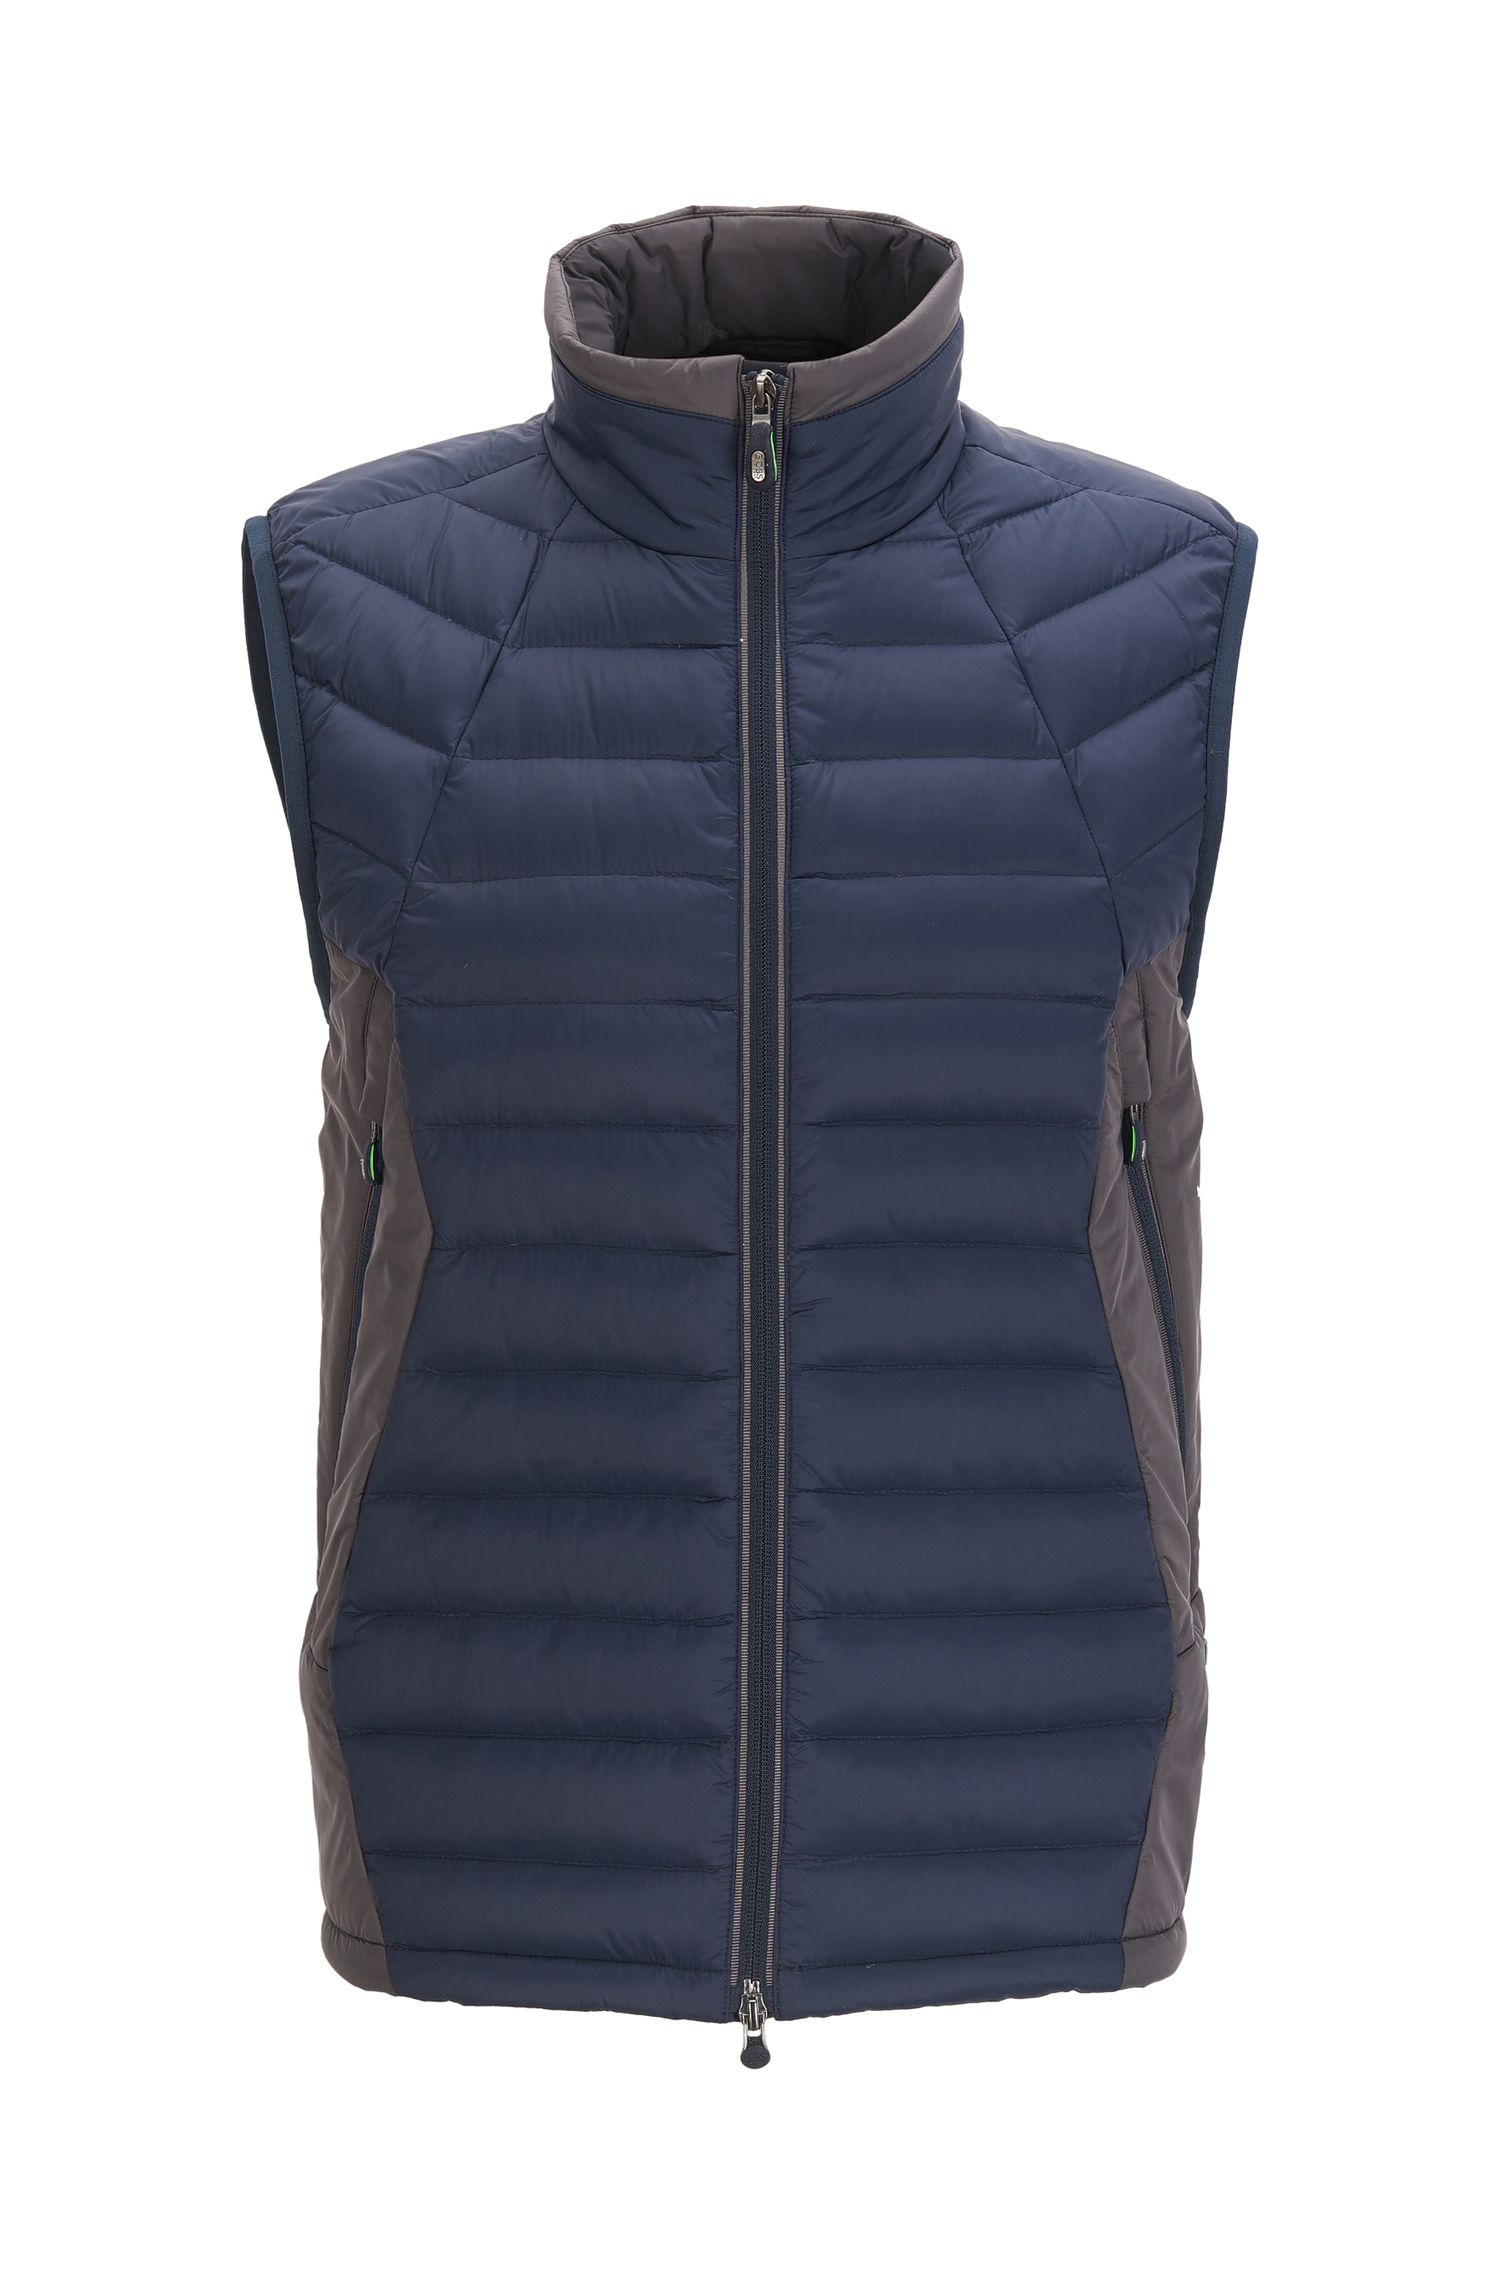 Padded gilet in water-repellent technical fabric